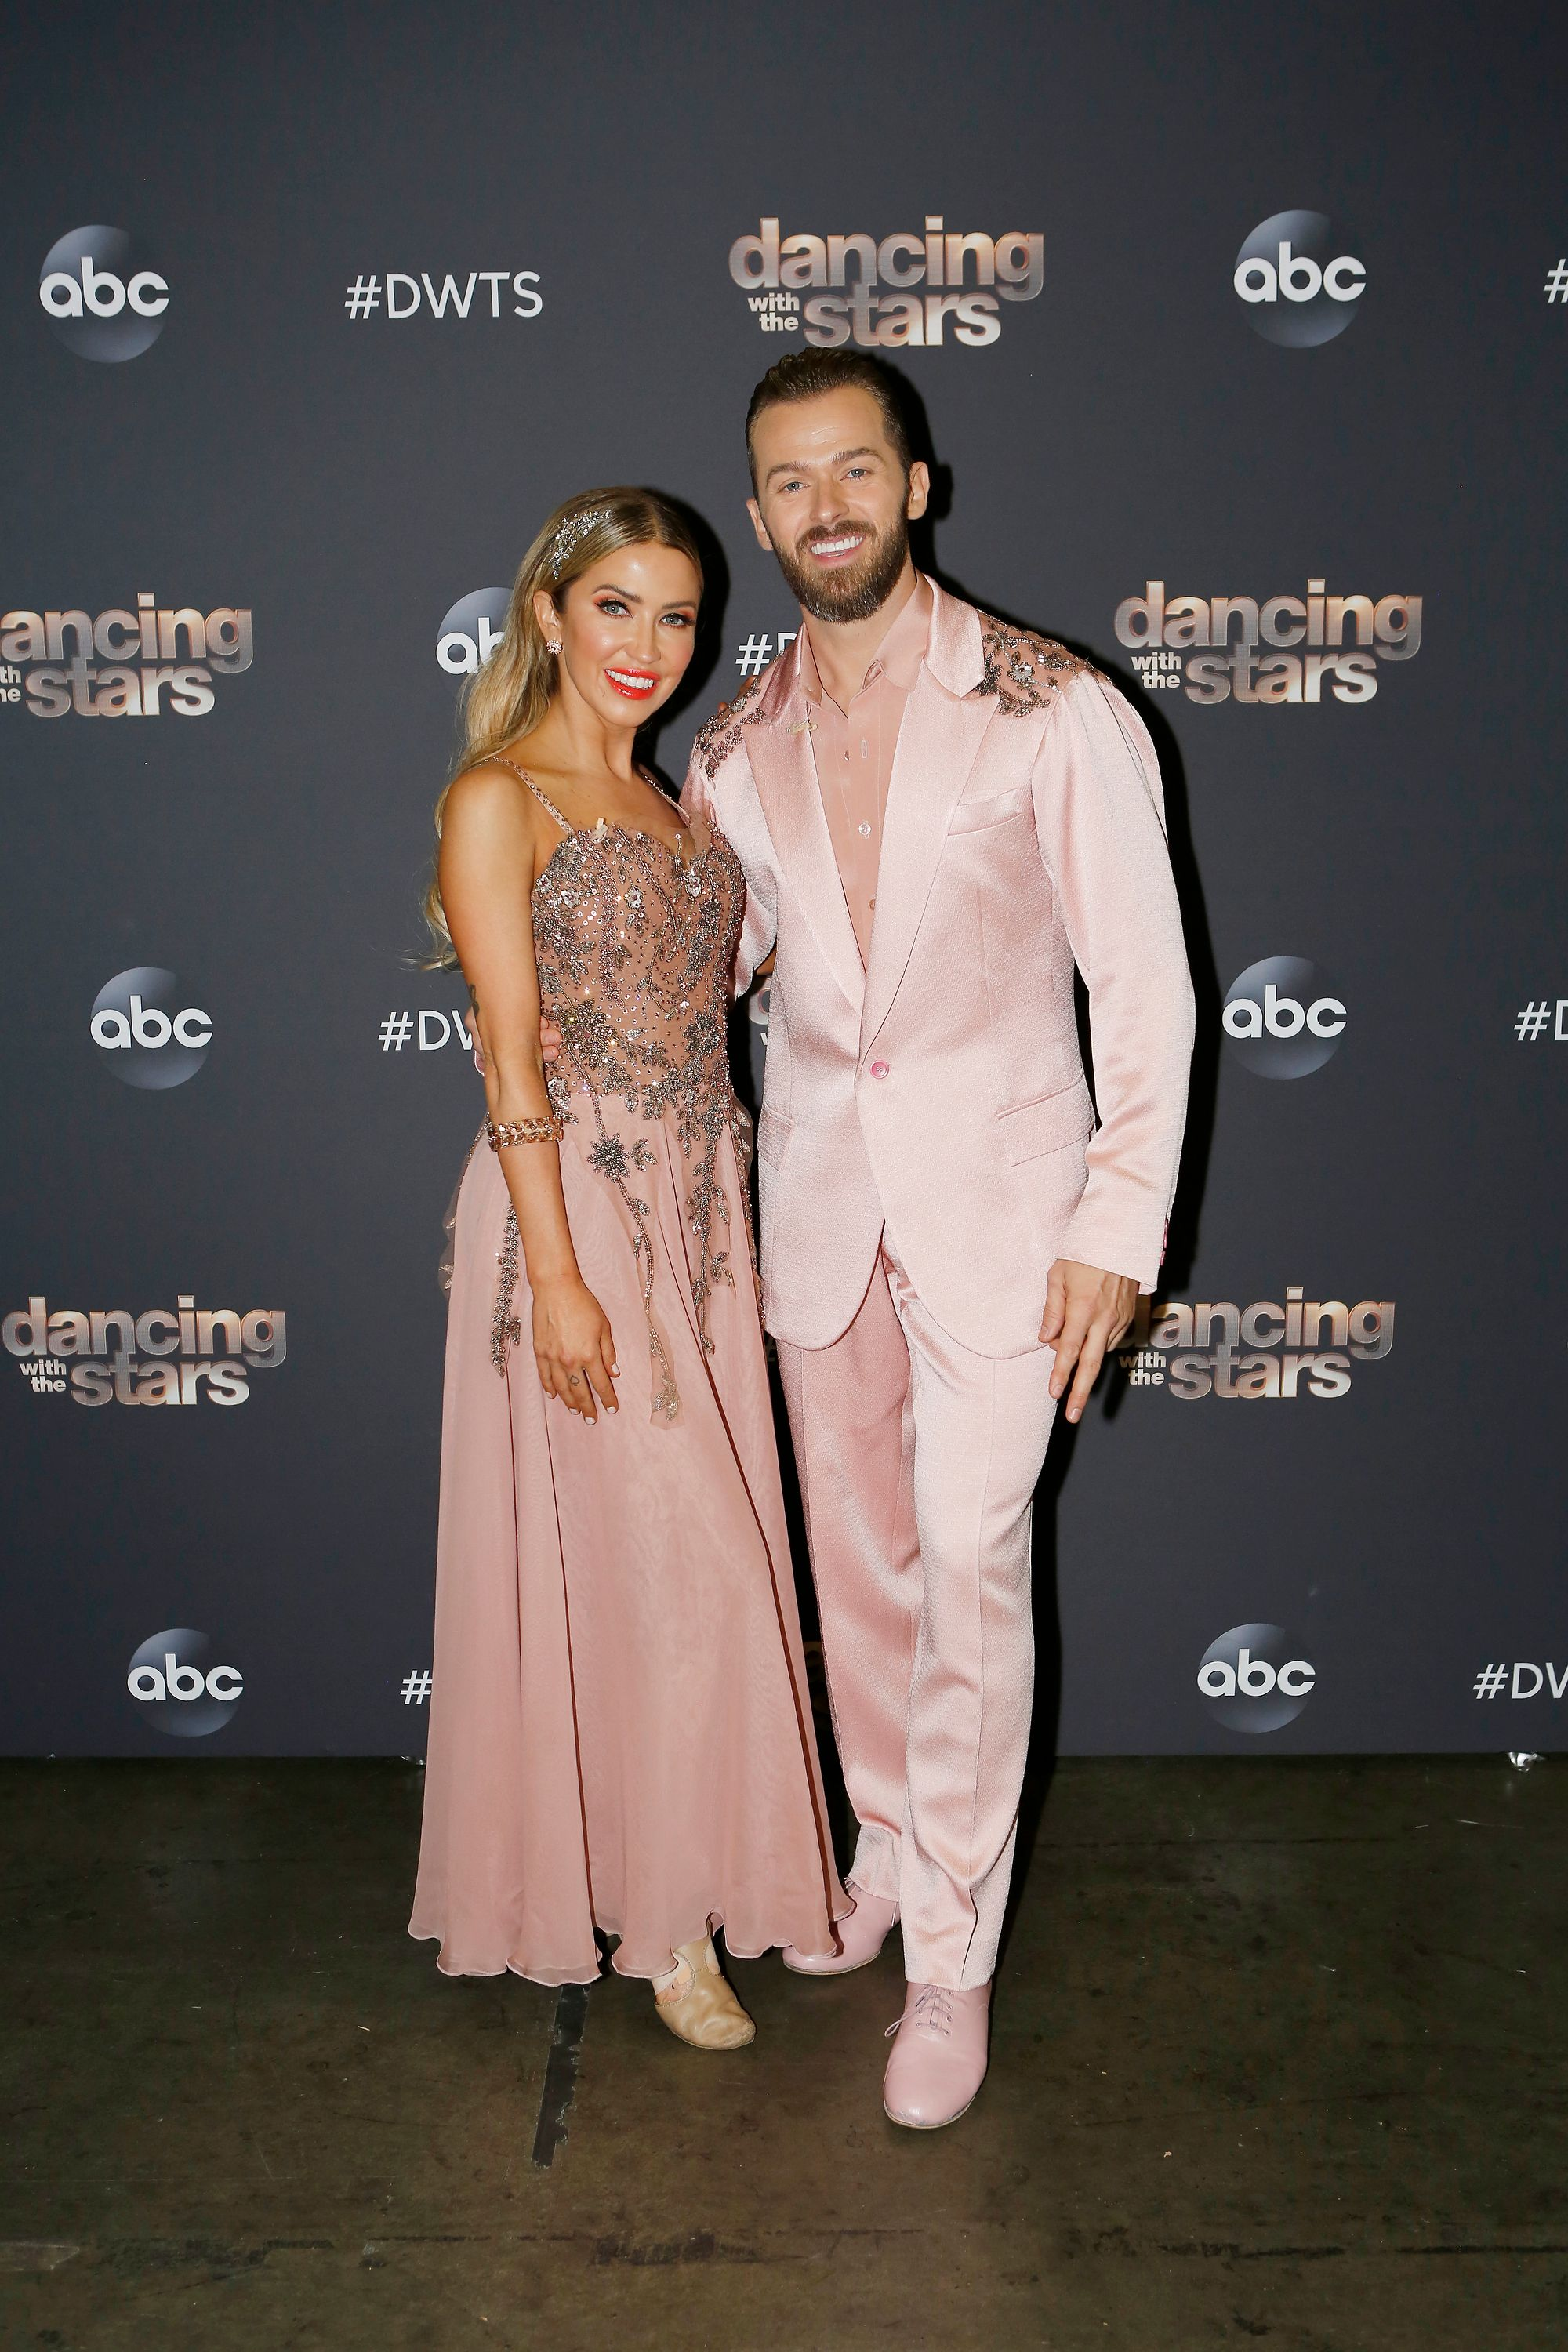 """Kaitlyn Bristowe and Artem Chigvintsev at ABC's """"Dancing With the Stars"""" - Season 29 - Week Two on September 22, 2020 